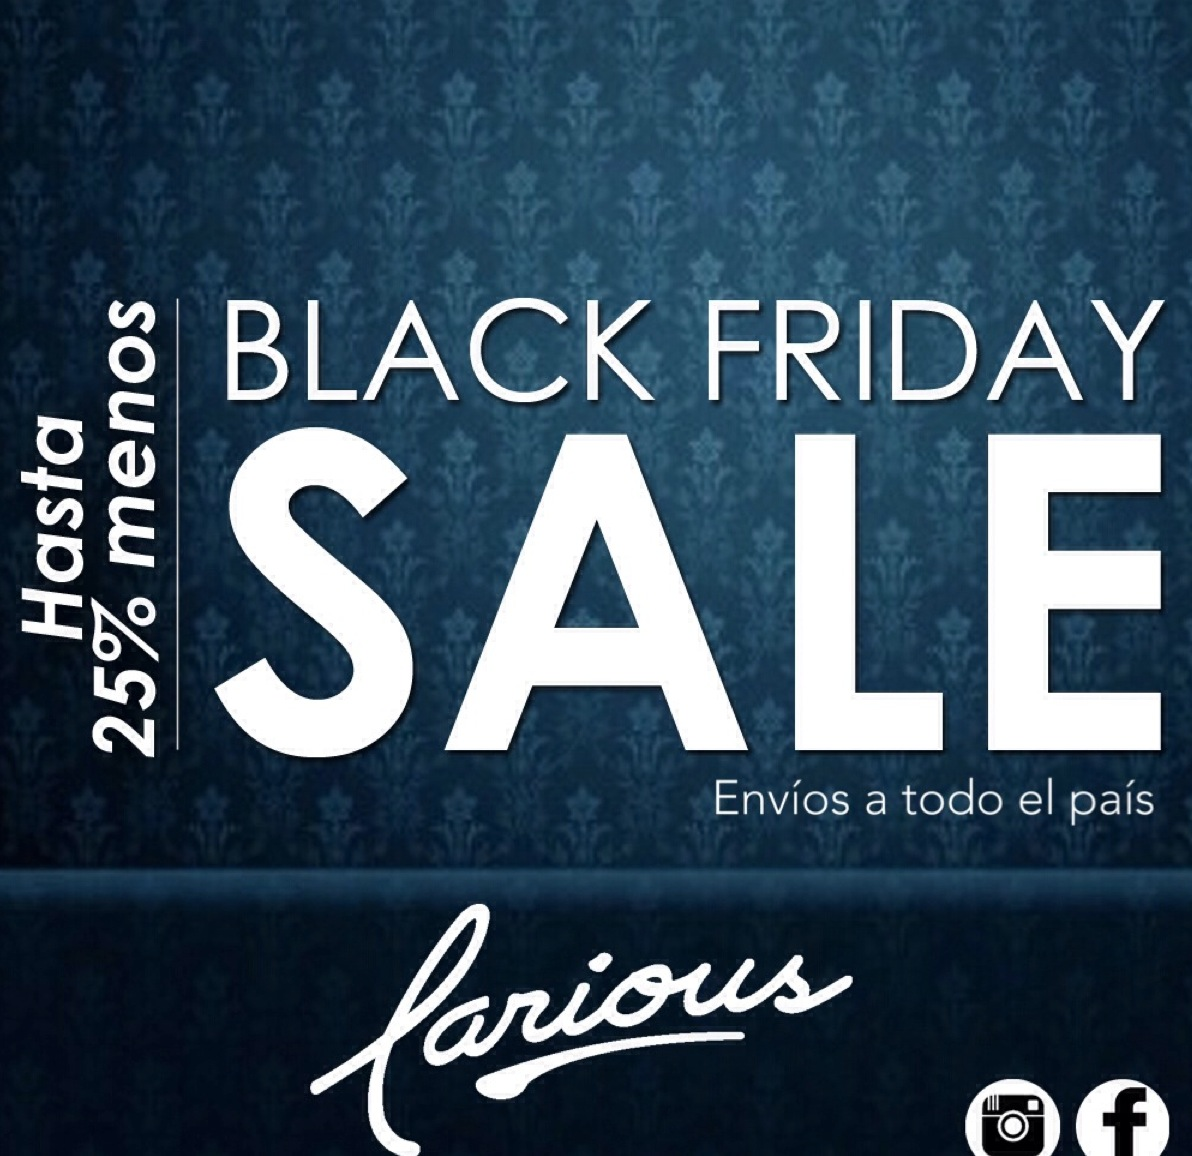 Black Friday Sale - Hasta 25% menos en Larious Chitre